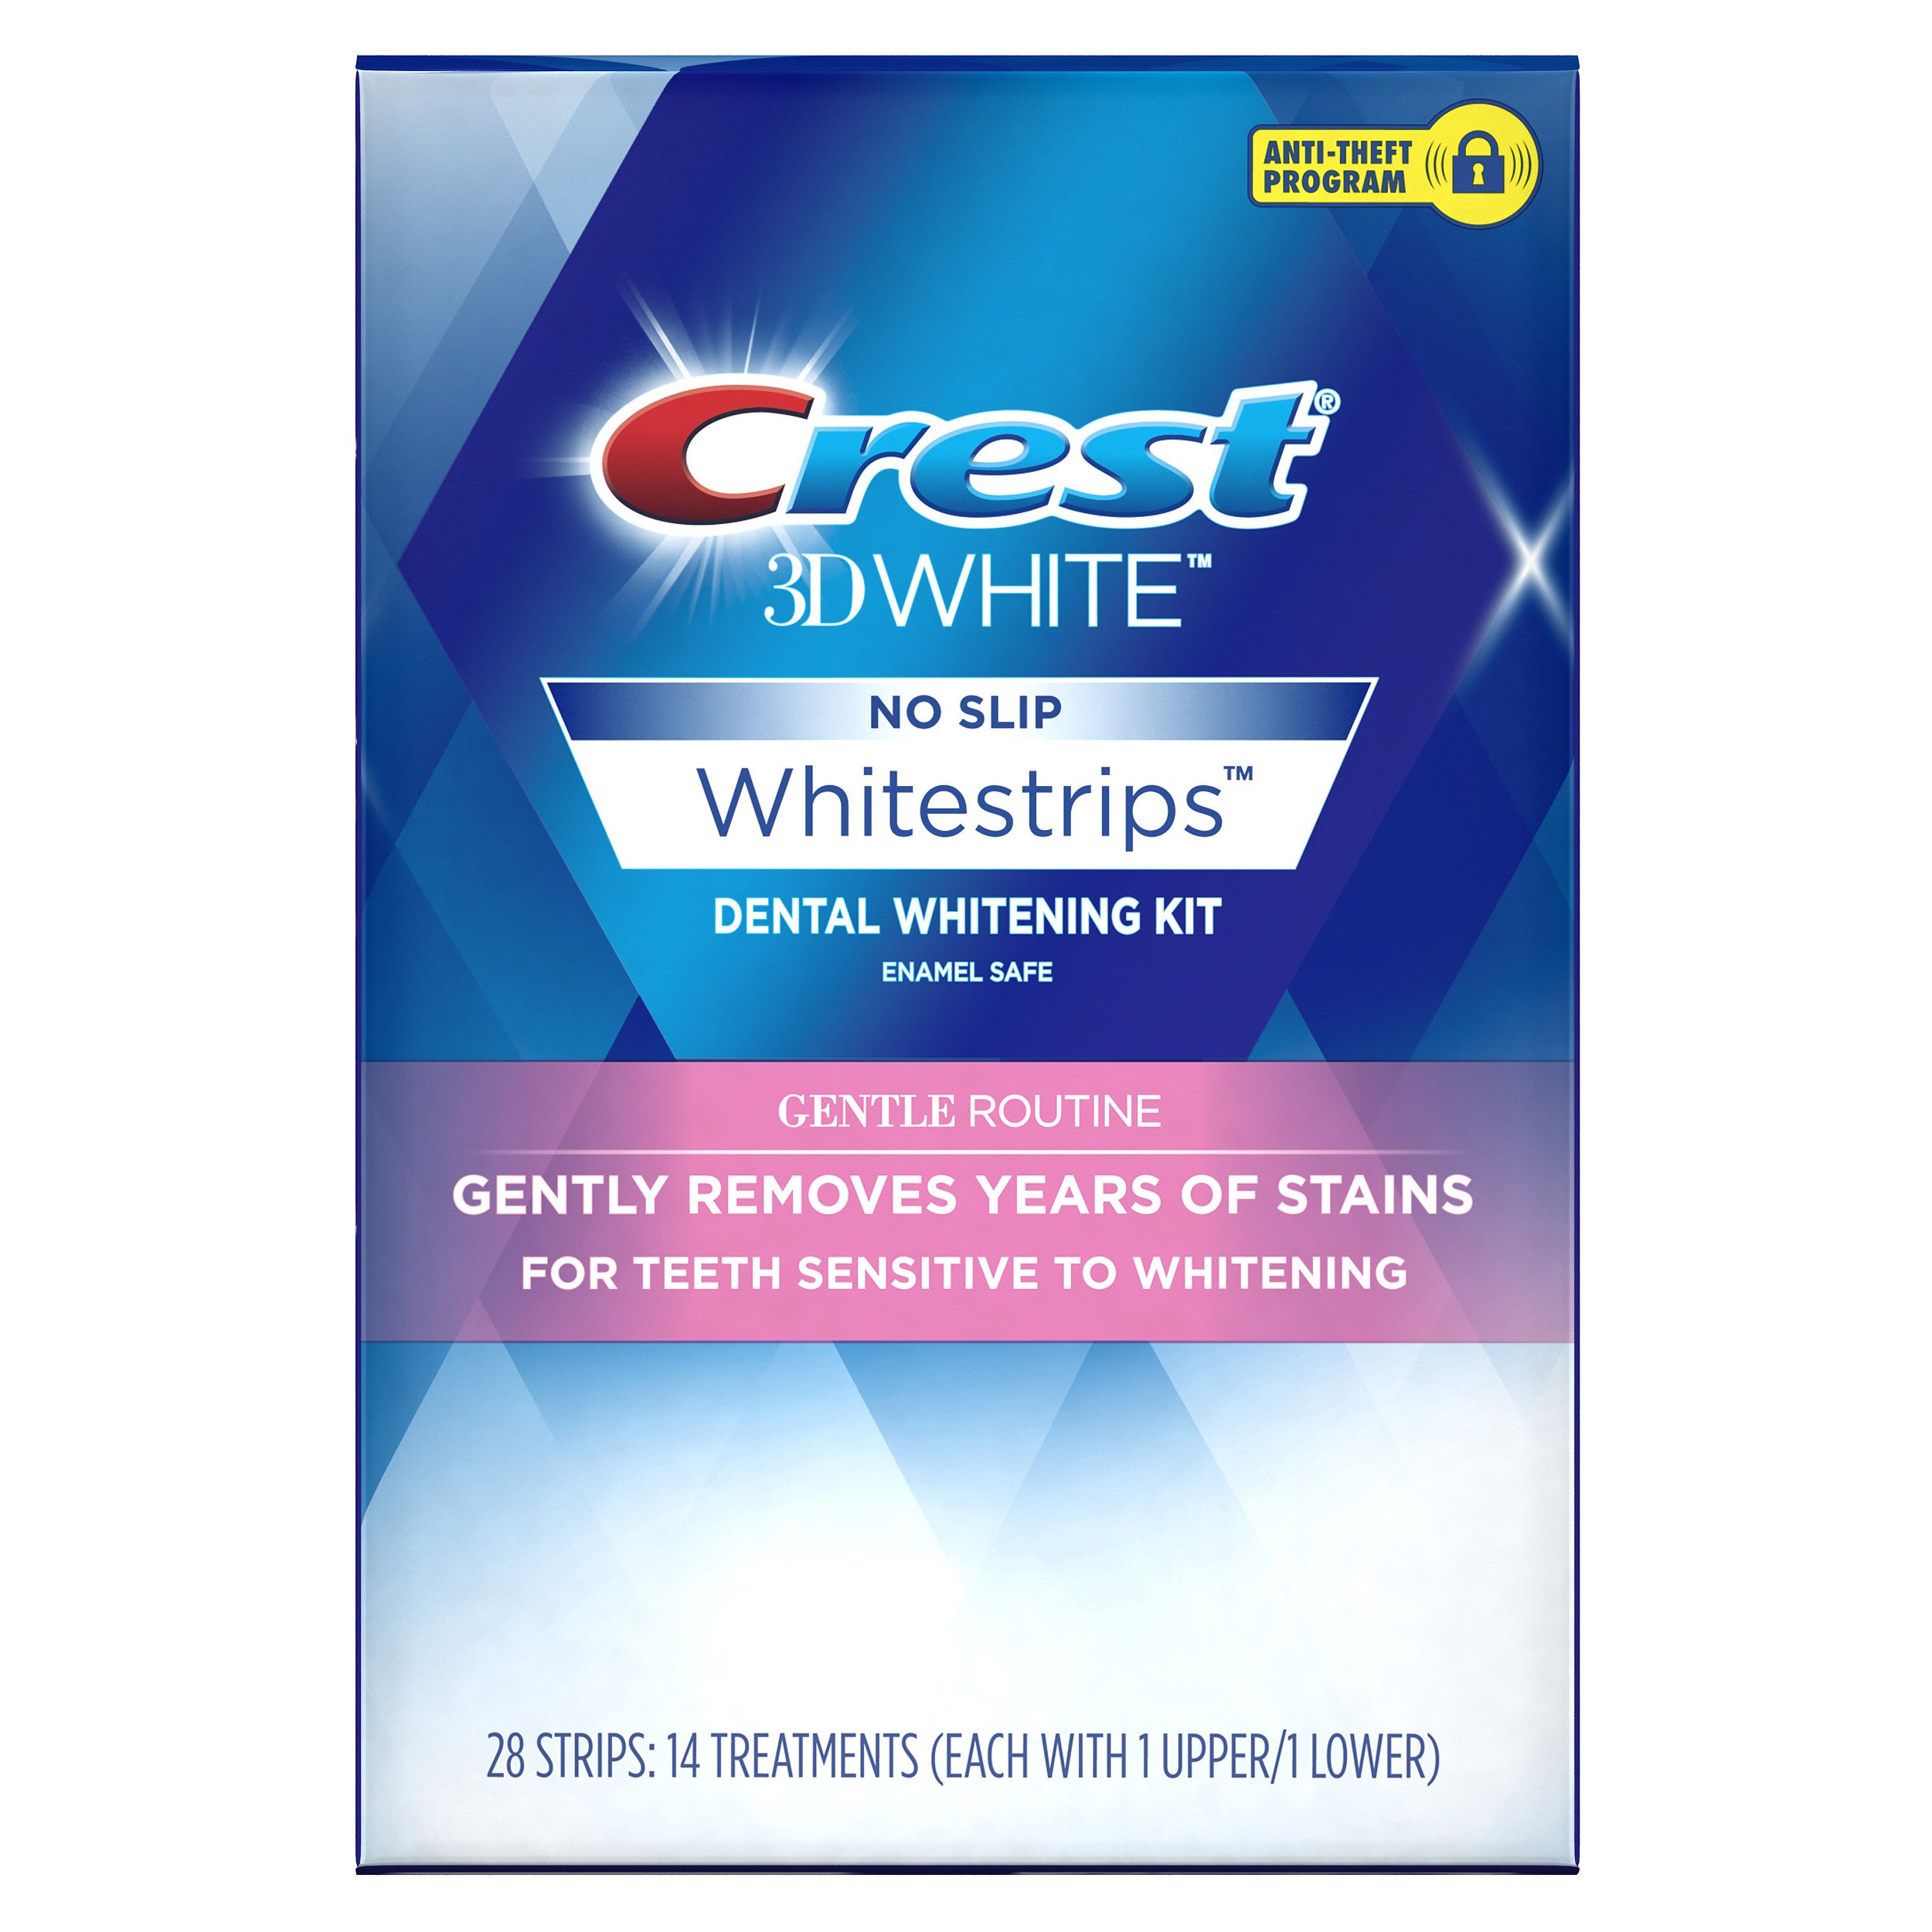 Crest 3D White Whitestrips Gentle Routine Teeth Whitening Kit, 14 Treatments by Crest